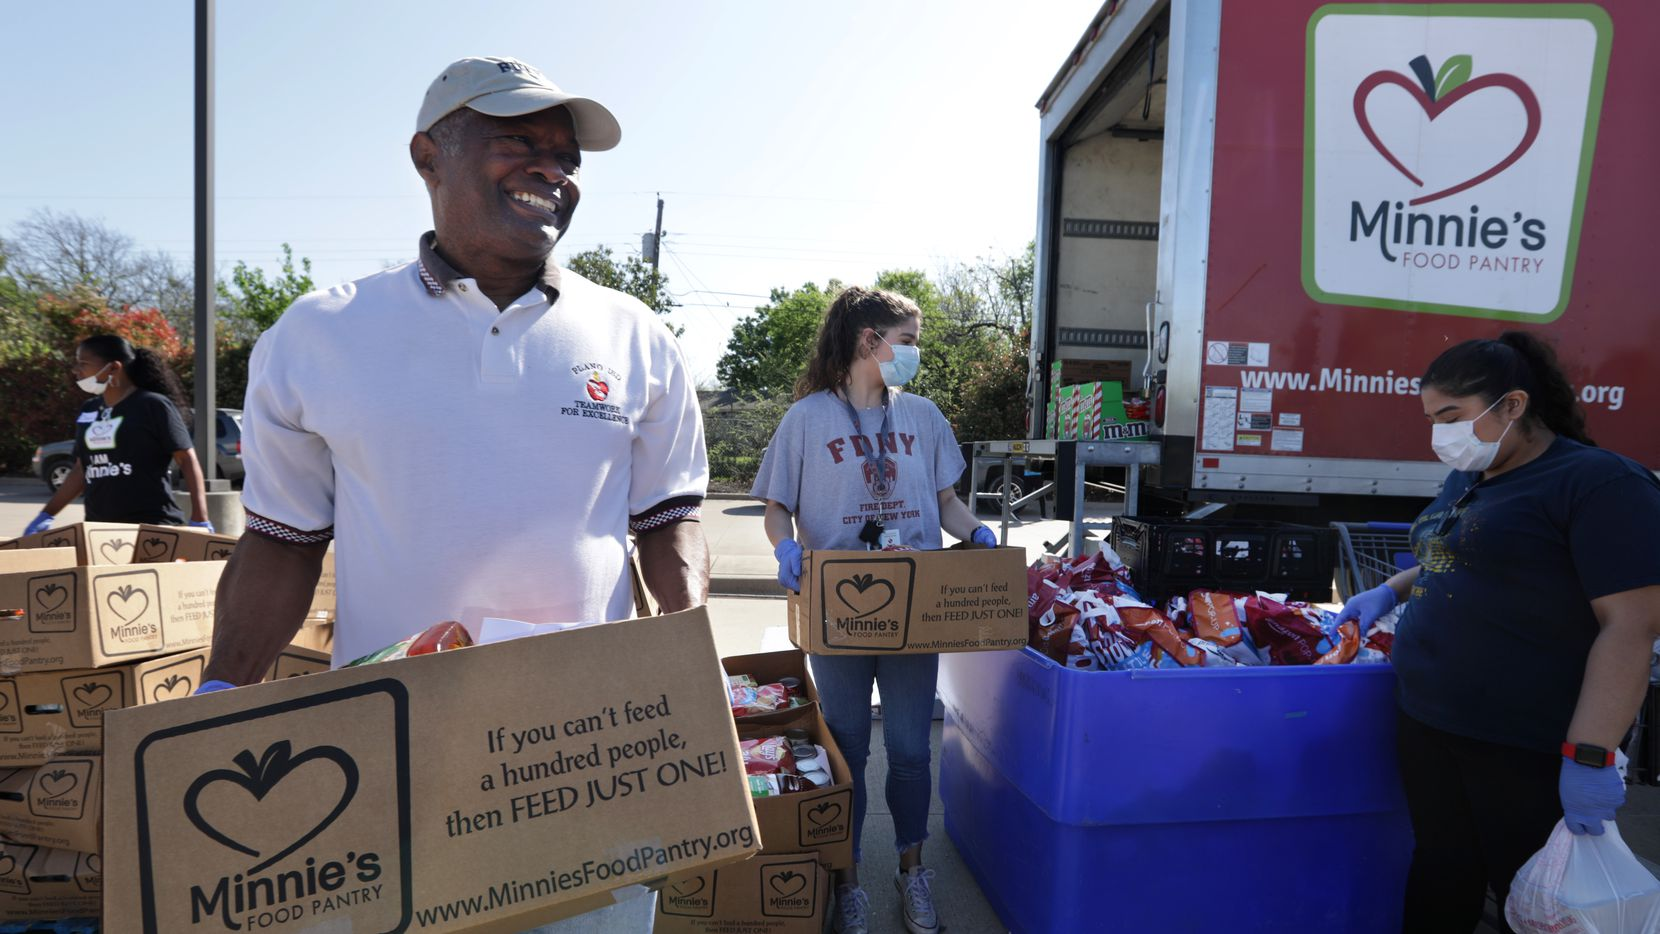 Volunteers with Minnie's Food Pantry pass out groceries at Meadows Elementary School. The Plano-based group is partnering with McKinney ISD to help families who need food assistance as the coronavirus pandemic continues.